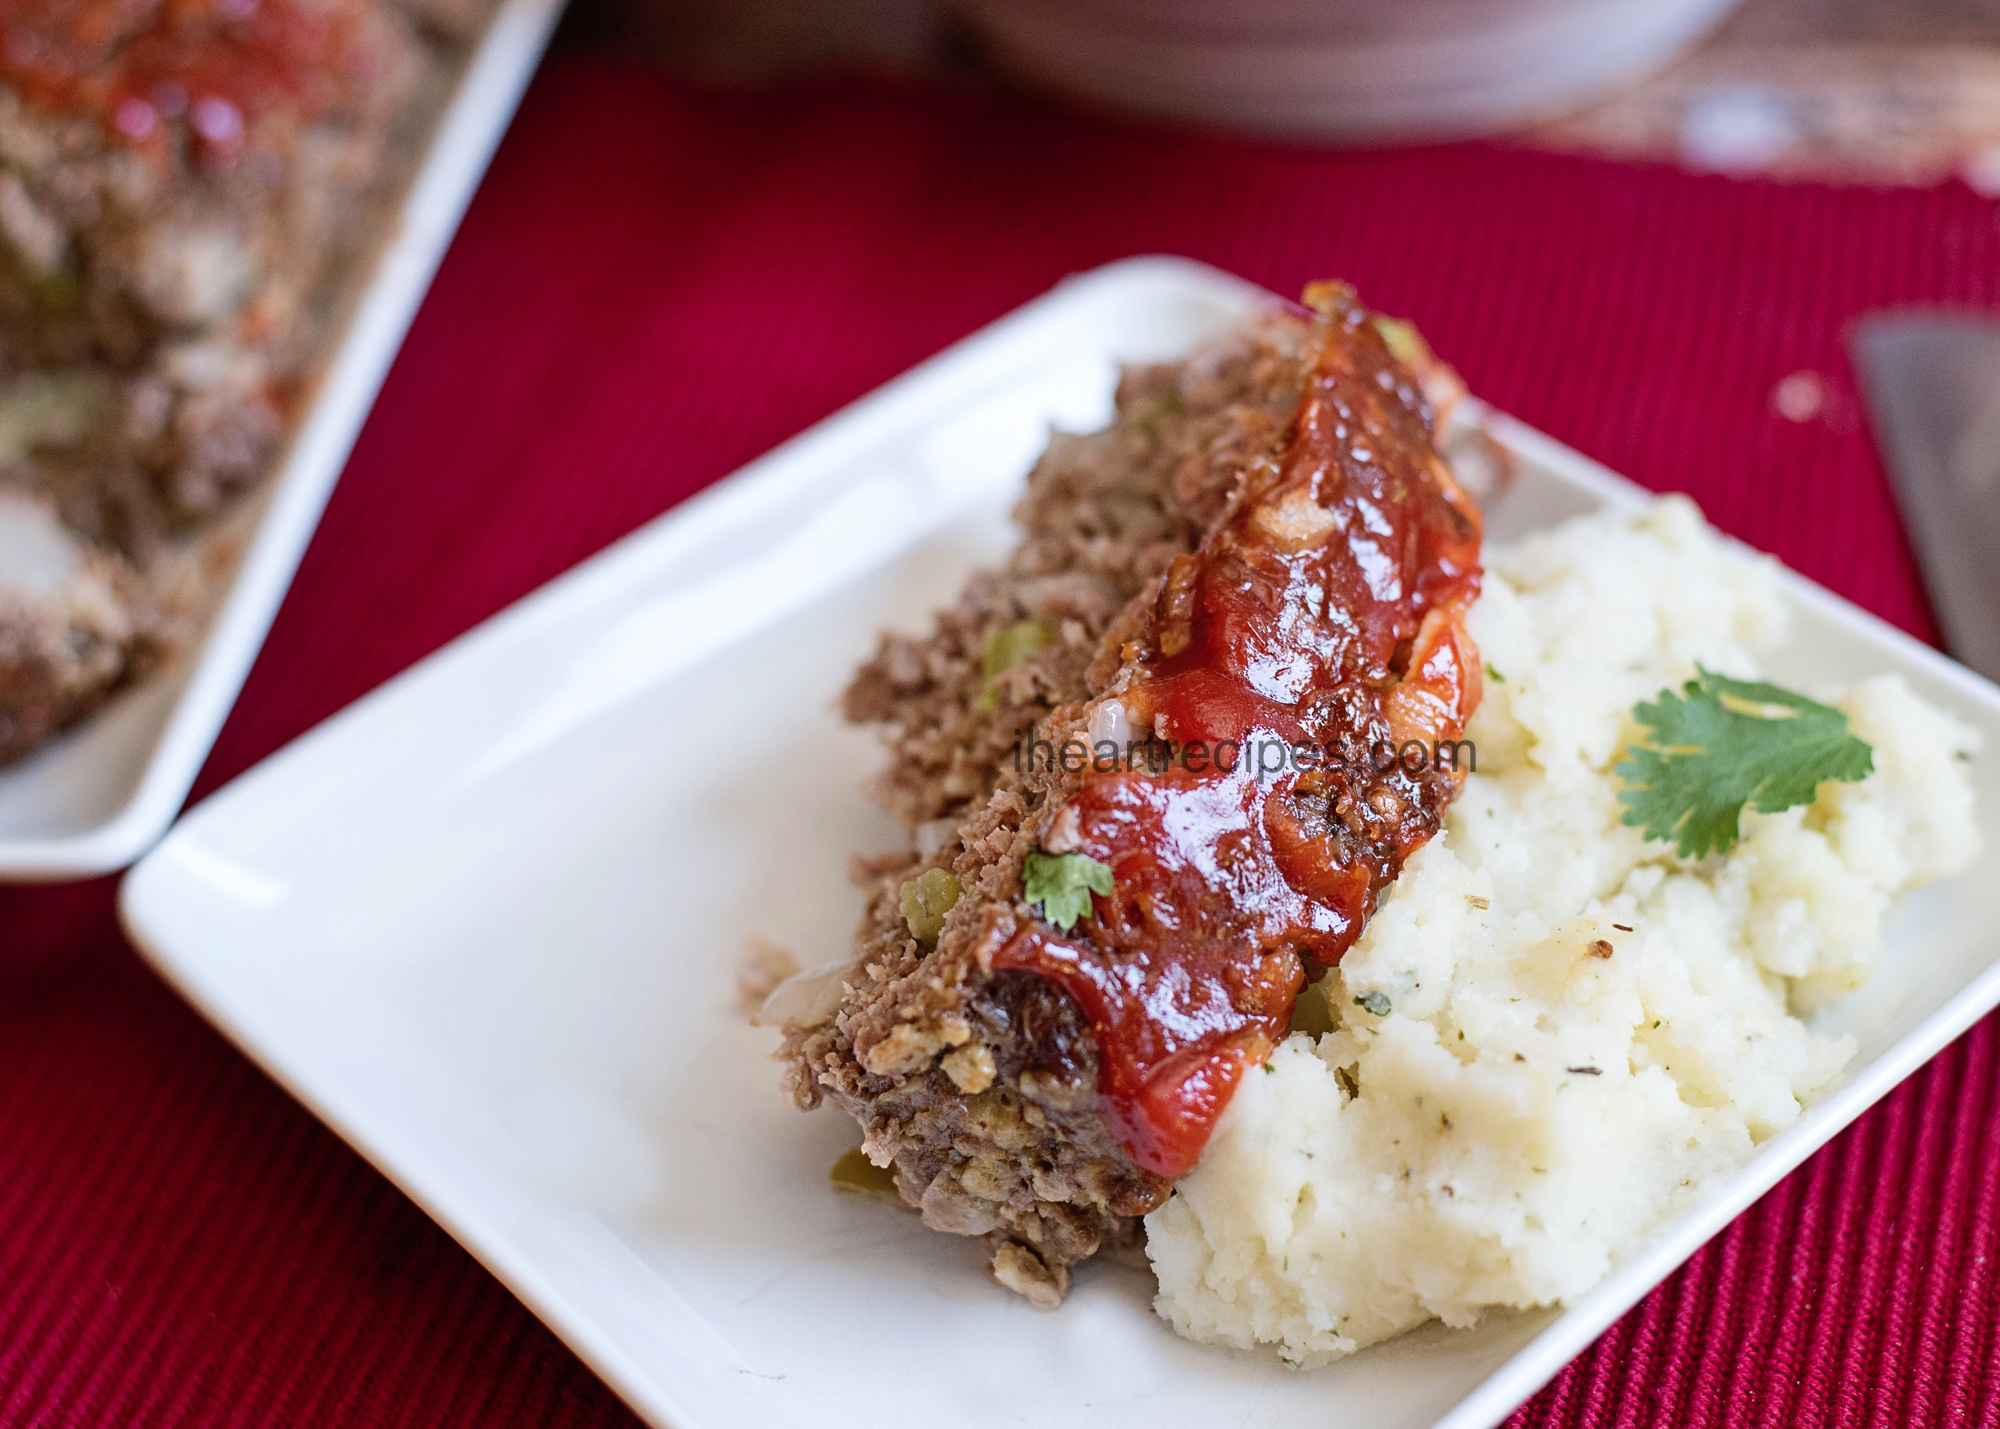 This classic meatloaf is perfectly seasoned and topped with a rich tomato ketchup